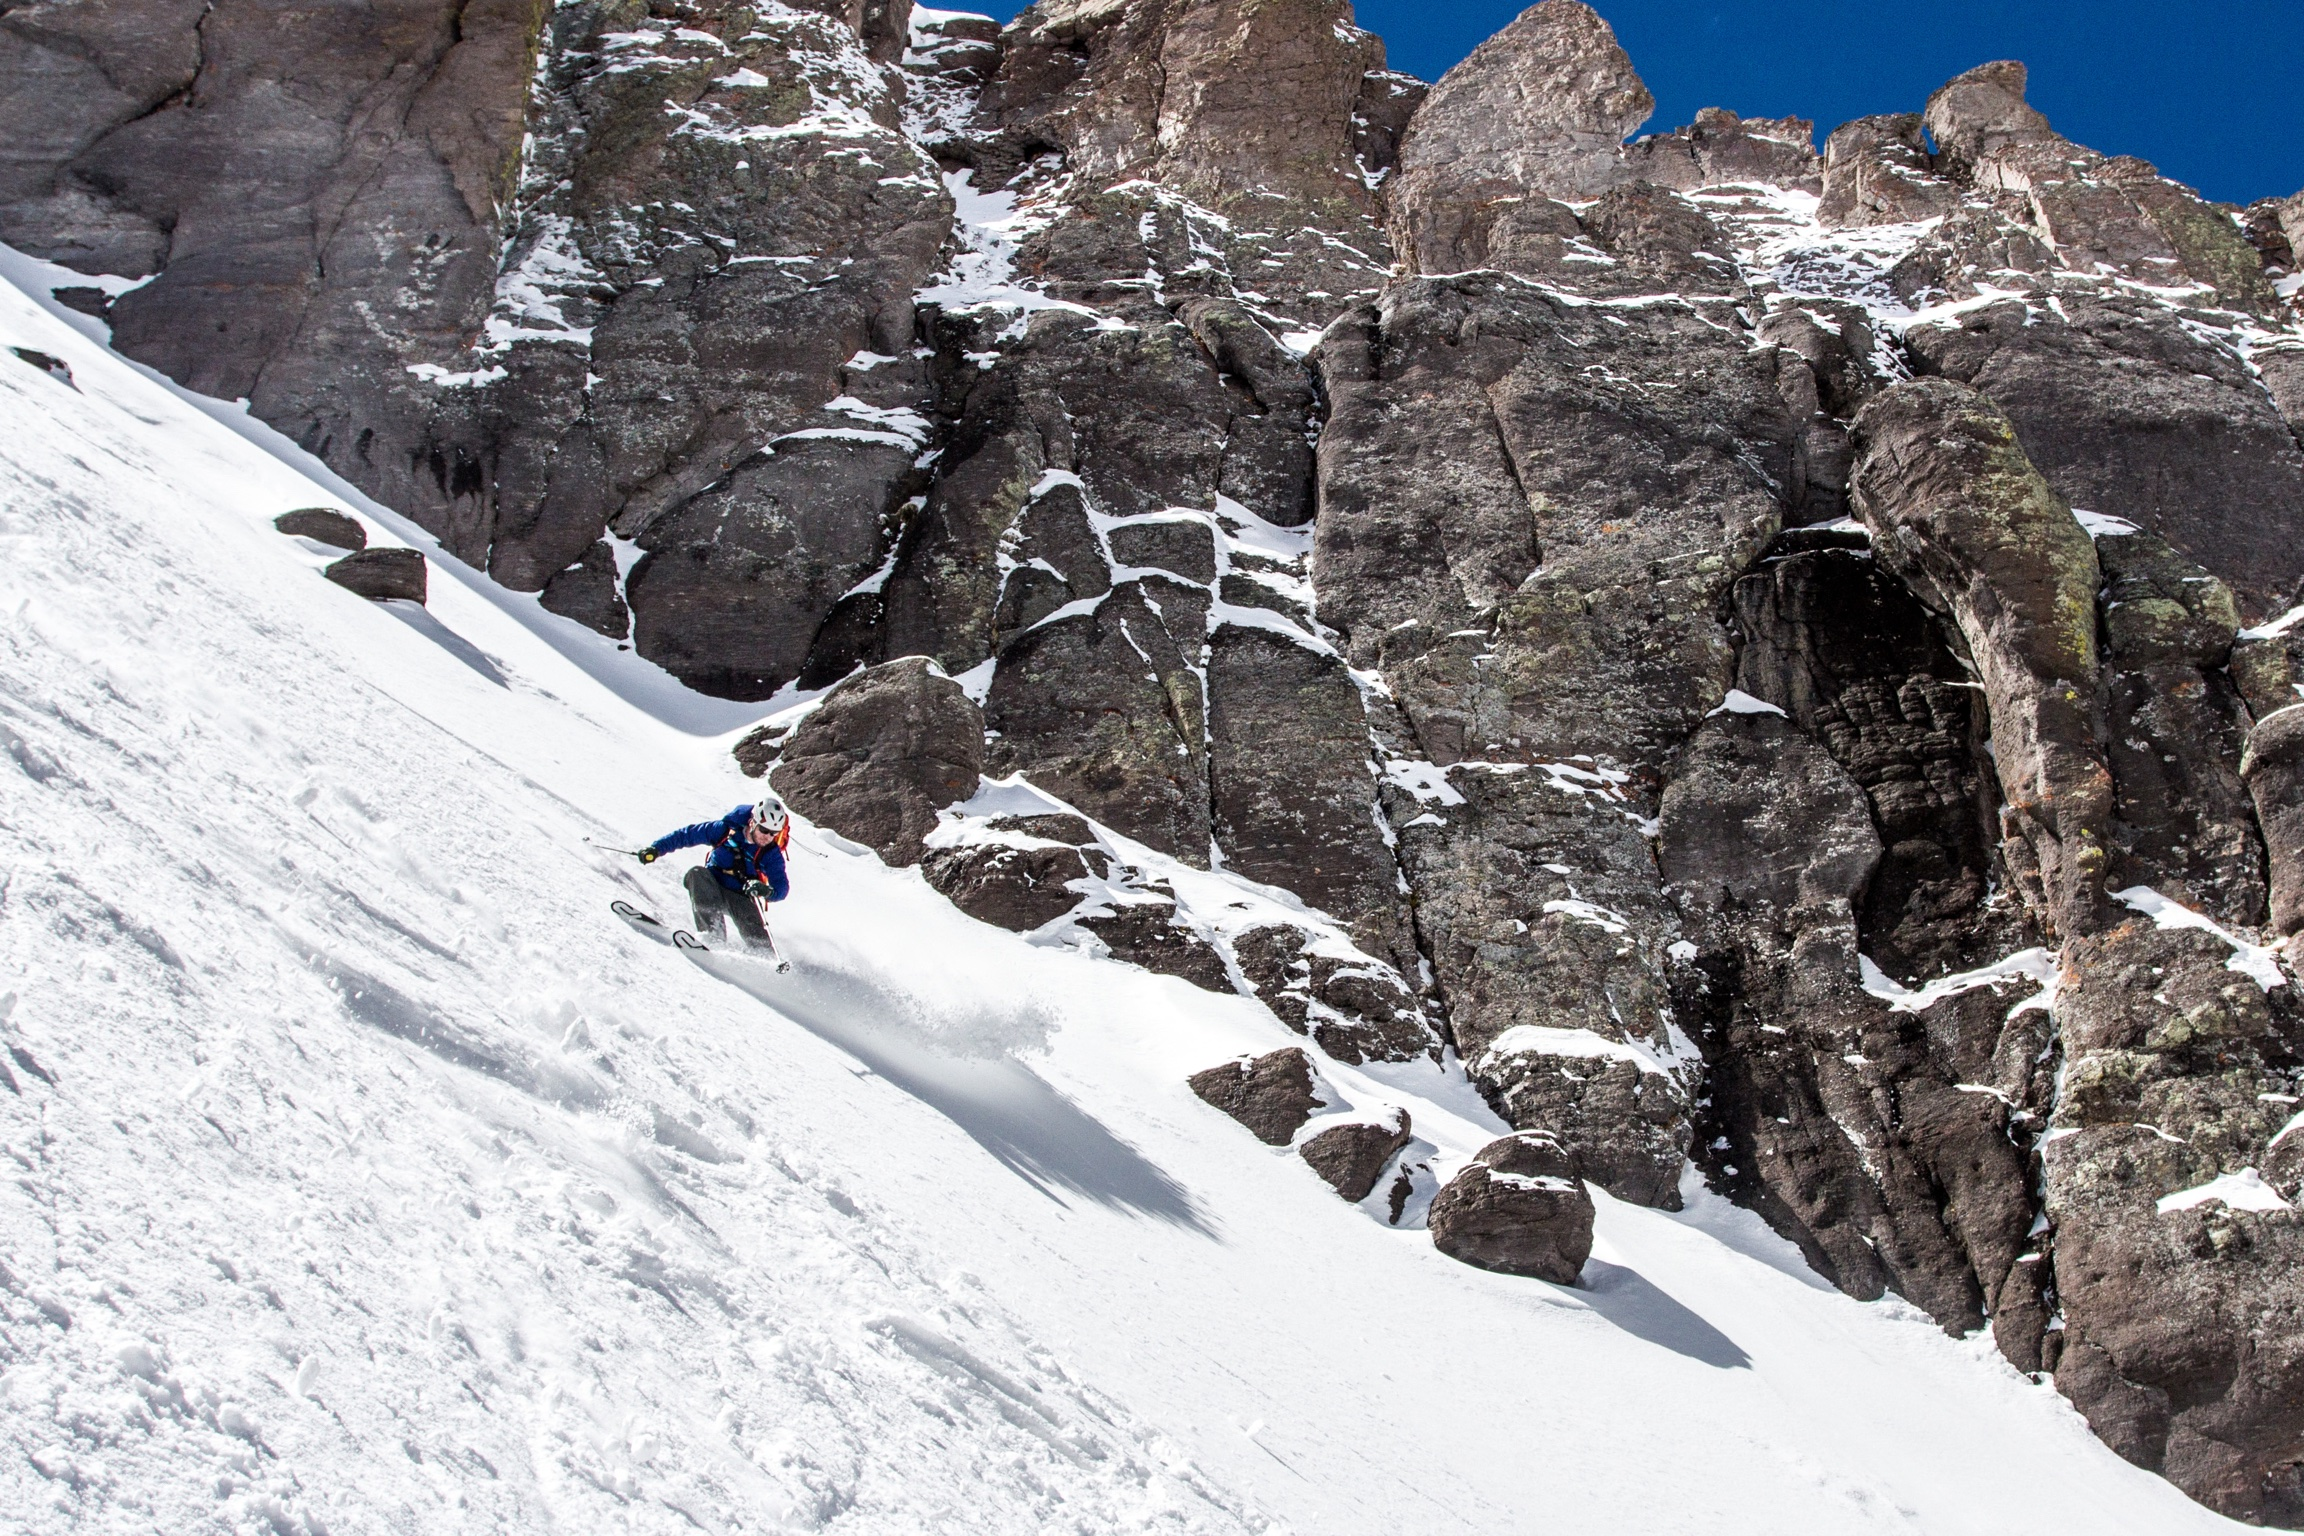 Dropping into the North Couloir of Potosi Peak. Skier: Jon Jay. Photo: TJ David